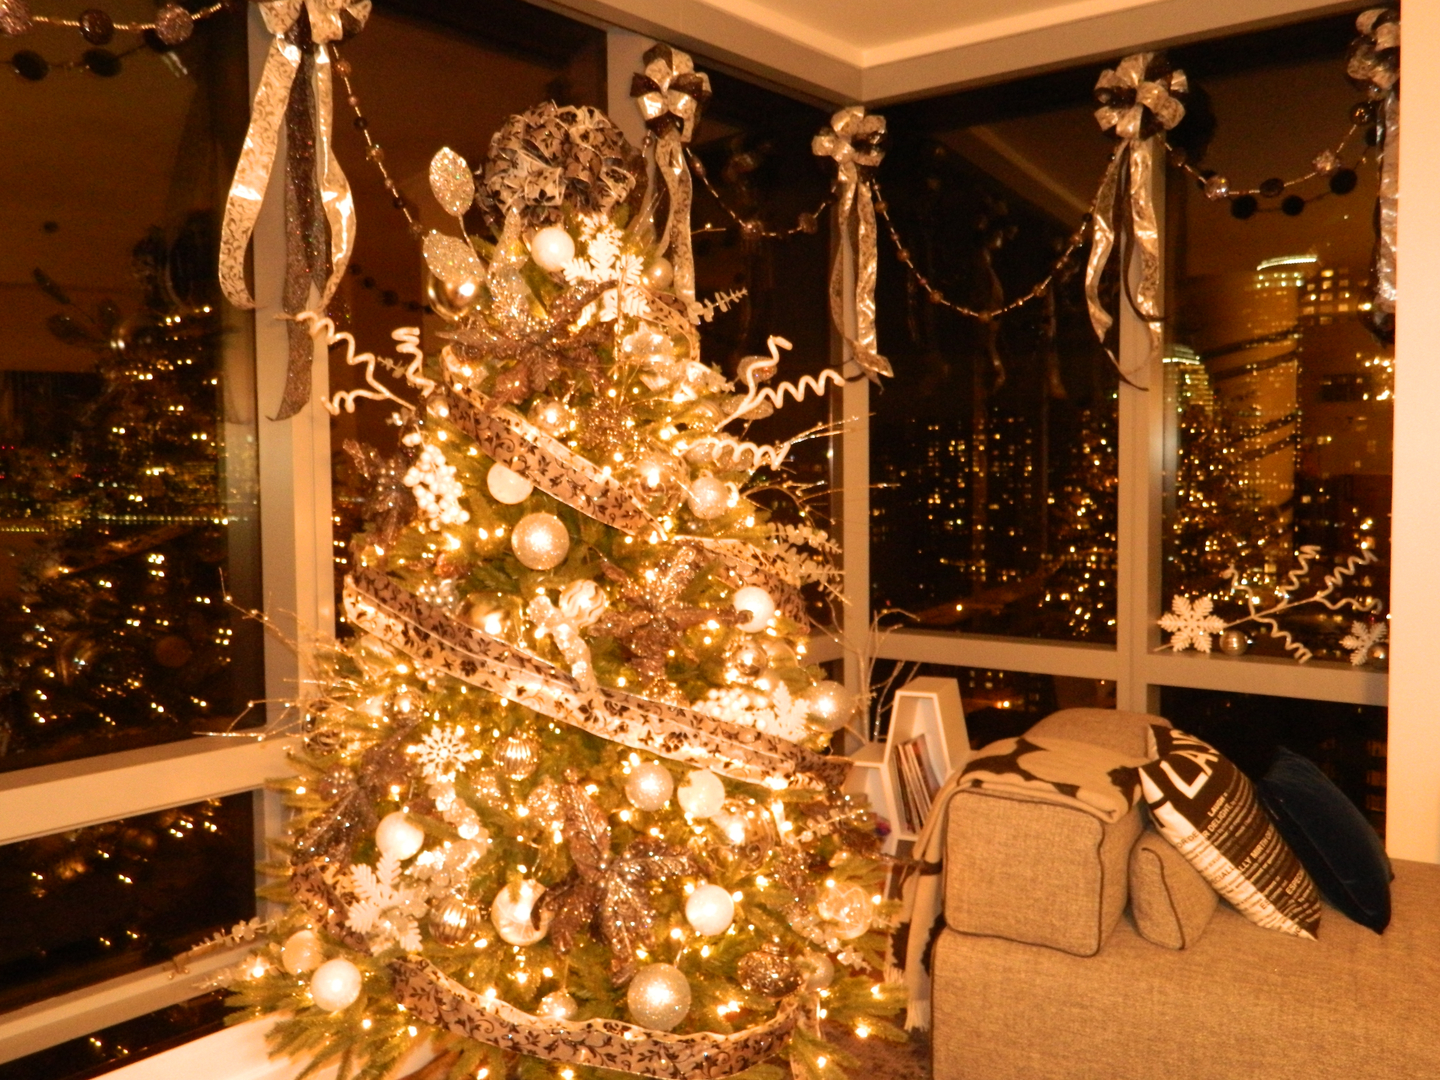 denise piccolo professional christmas decorating and event planning nyc - Professional Christmas Decorators Near Me